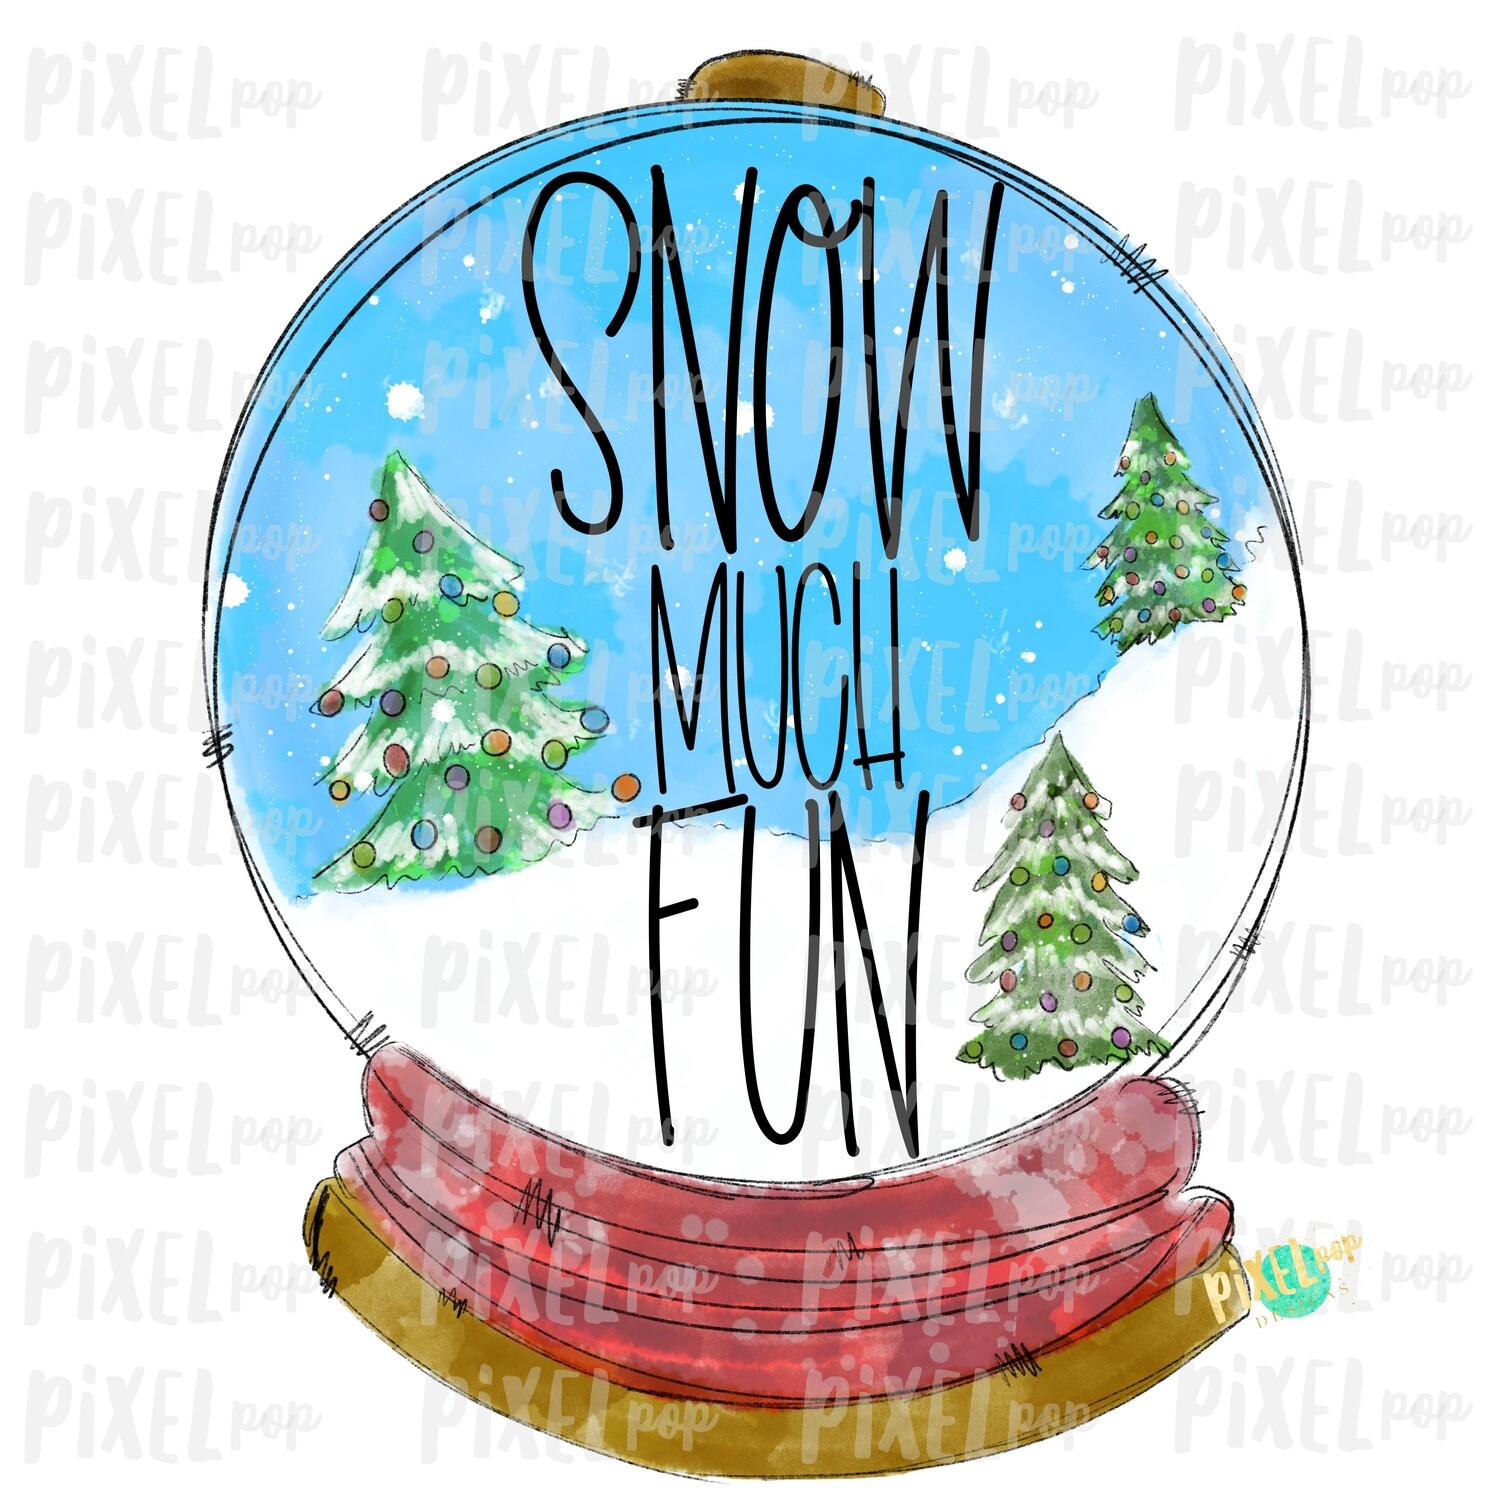 Snow Much Fun Winter Snow Globe Scene Watercolor Sublimation PNG   Hand Drawn Design   Sublimation PNG   Digital Download   Printable Art